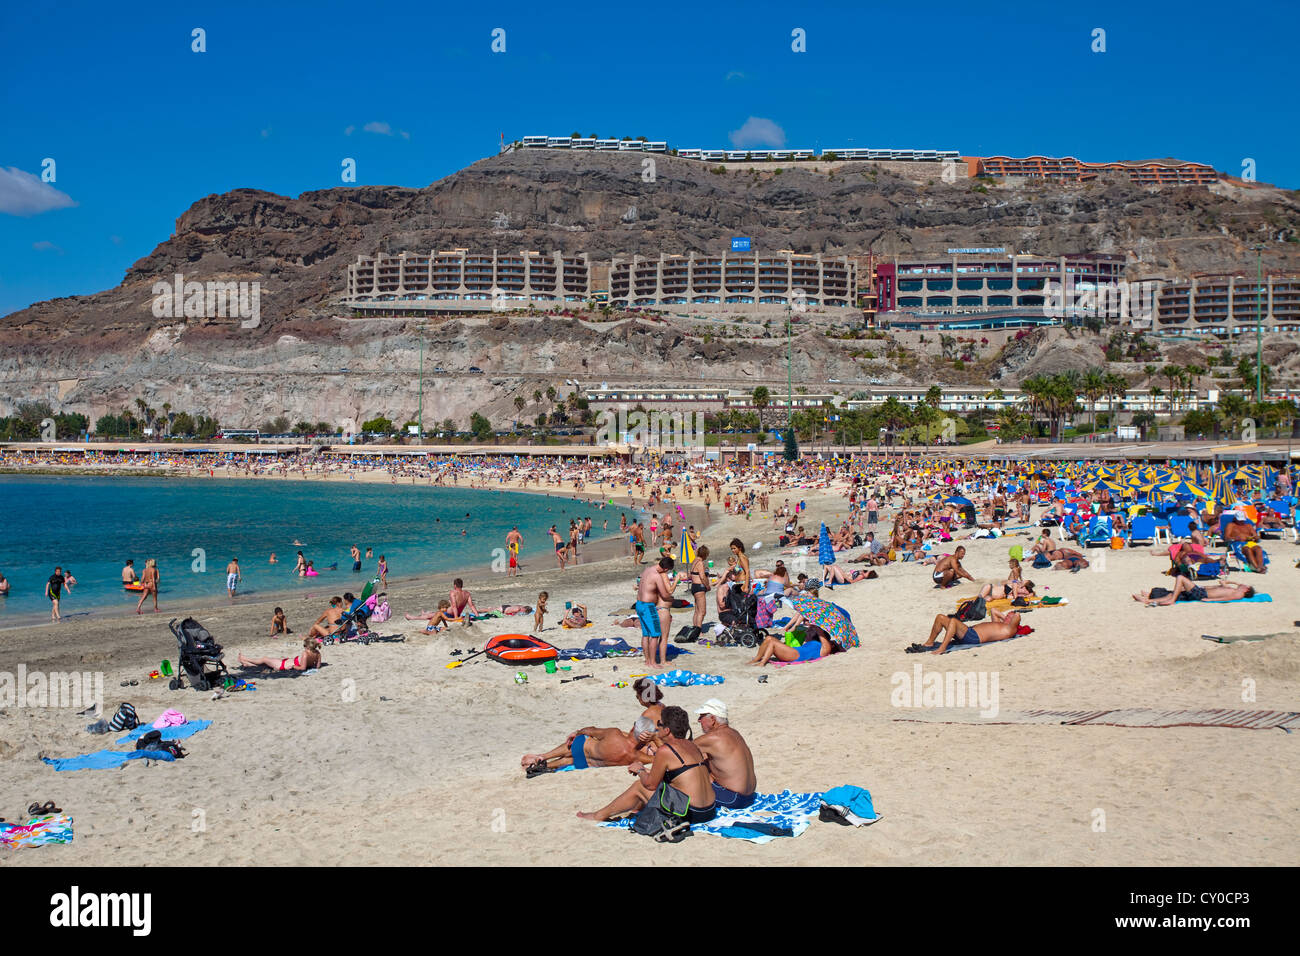 People At Amadores Beach Near Puerto Rico Gran Canaria Canary Islands Spain Europe